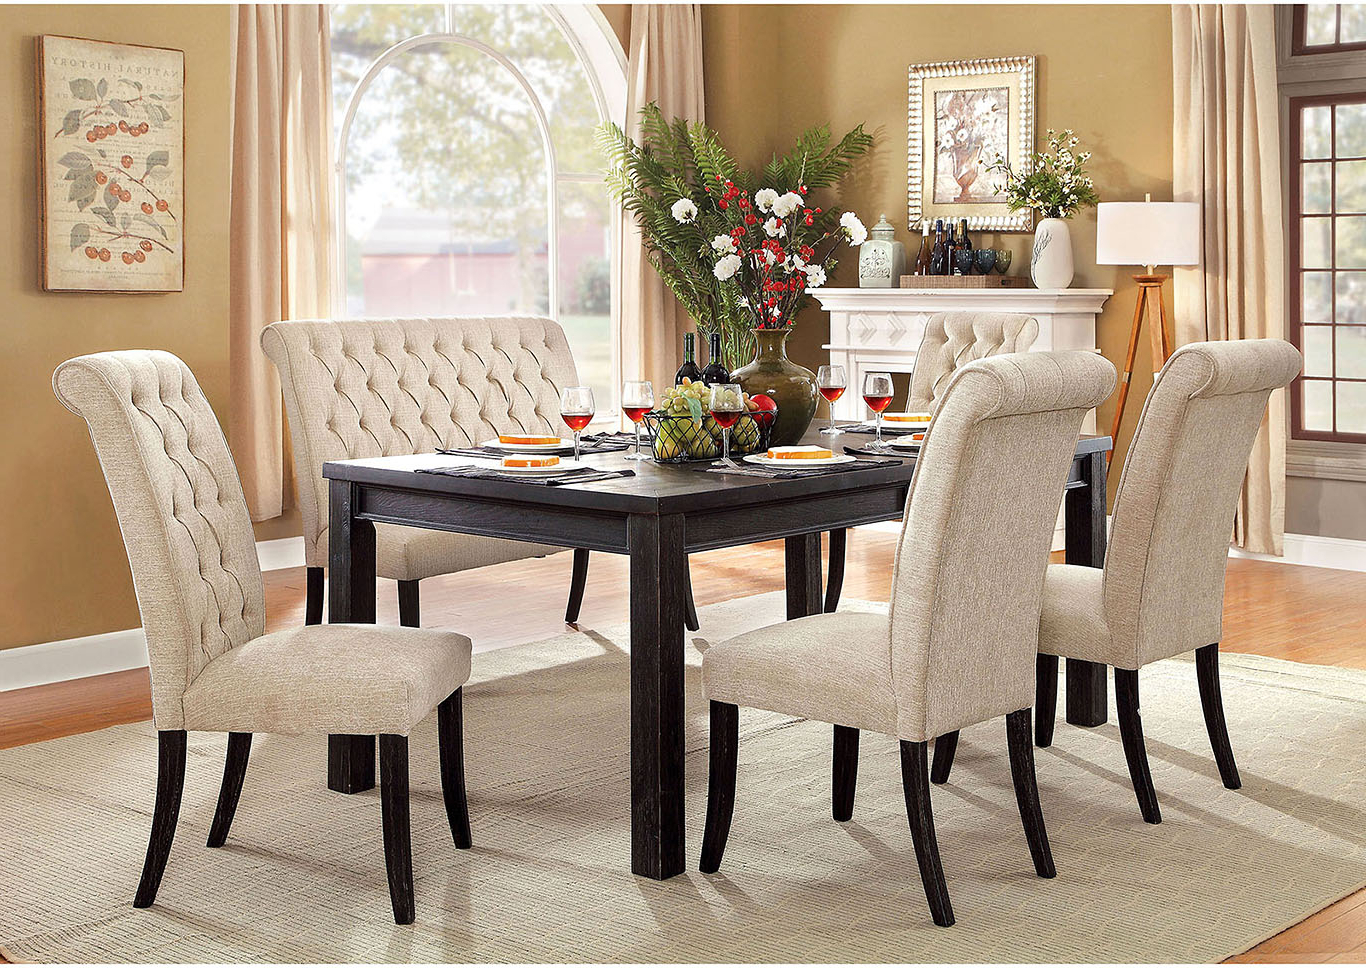 Best And Newest 5Th Avenue Furniture – Mi Sania I Antique Black Dining Table Intended For Antique Black Wood Kitchen Dining Tables (View 12 of 25)